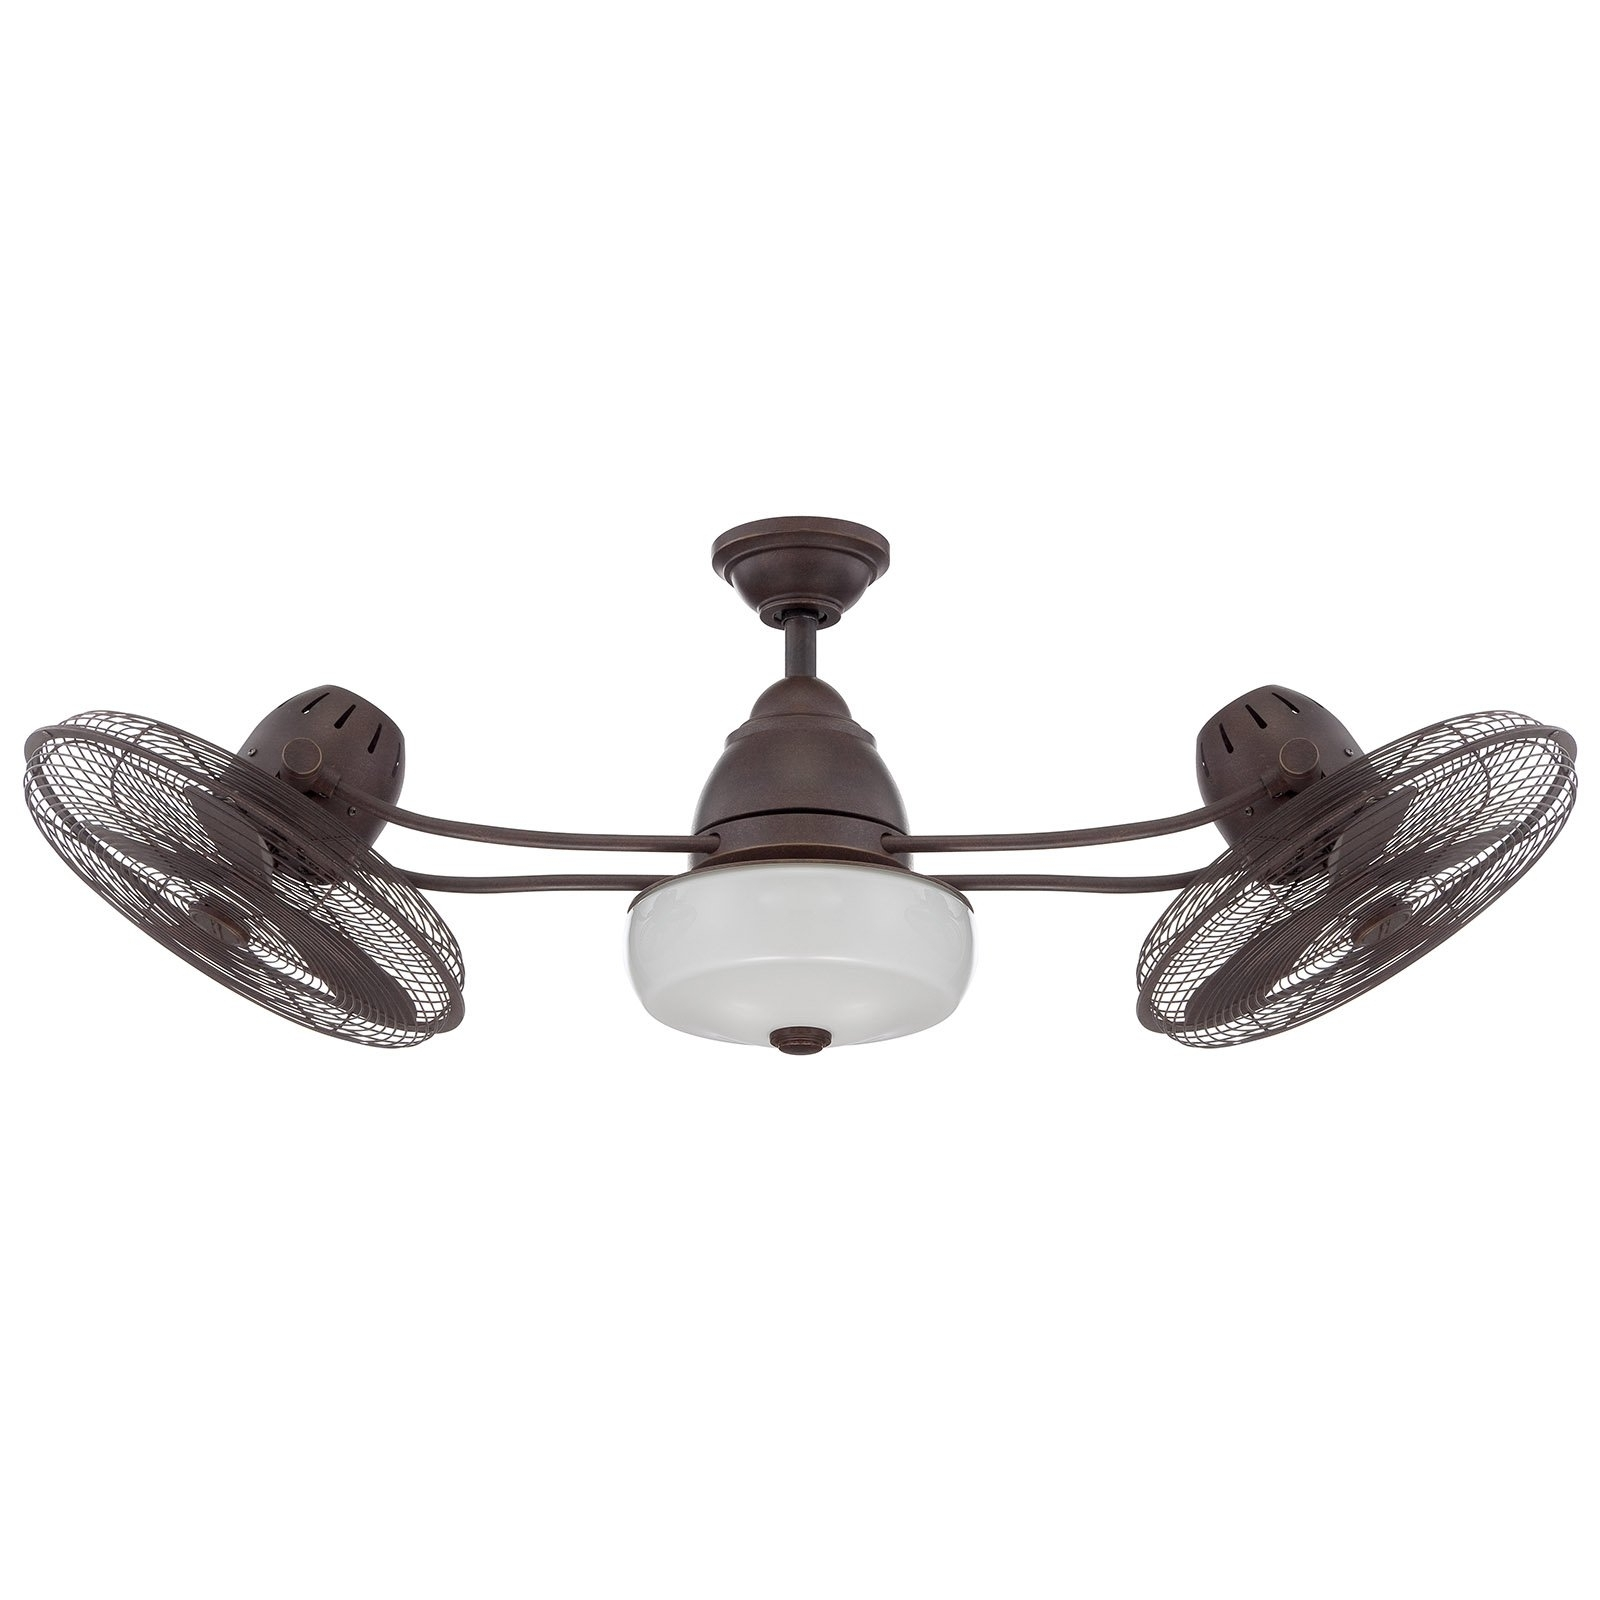 48 Outdoor Ceiling Fans With Light Kit Regarding Most Recent Craftmade Bellows Ii Bw248Ag6 48 In (View 5 of 20)